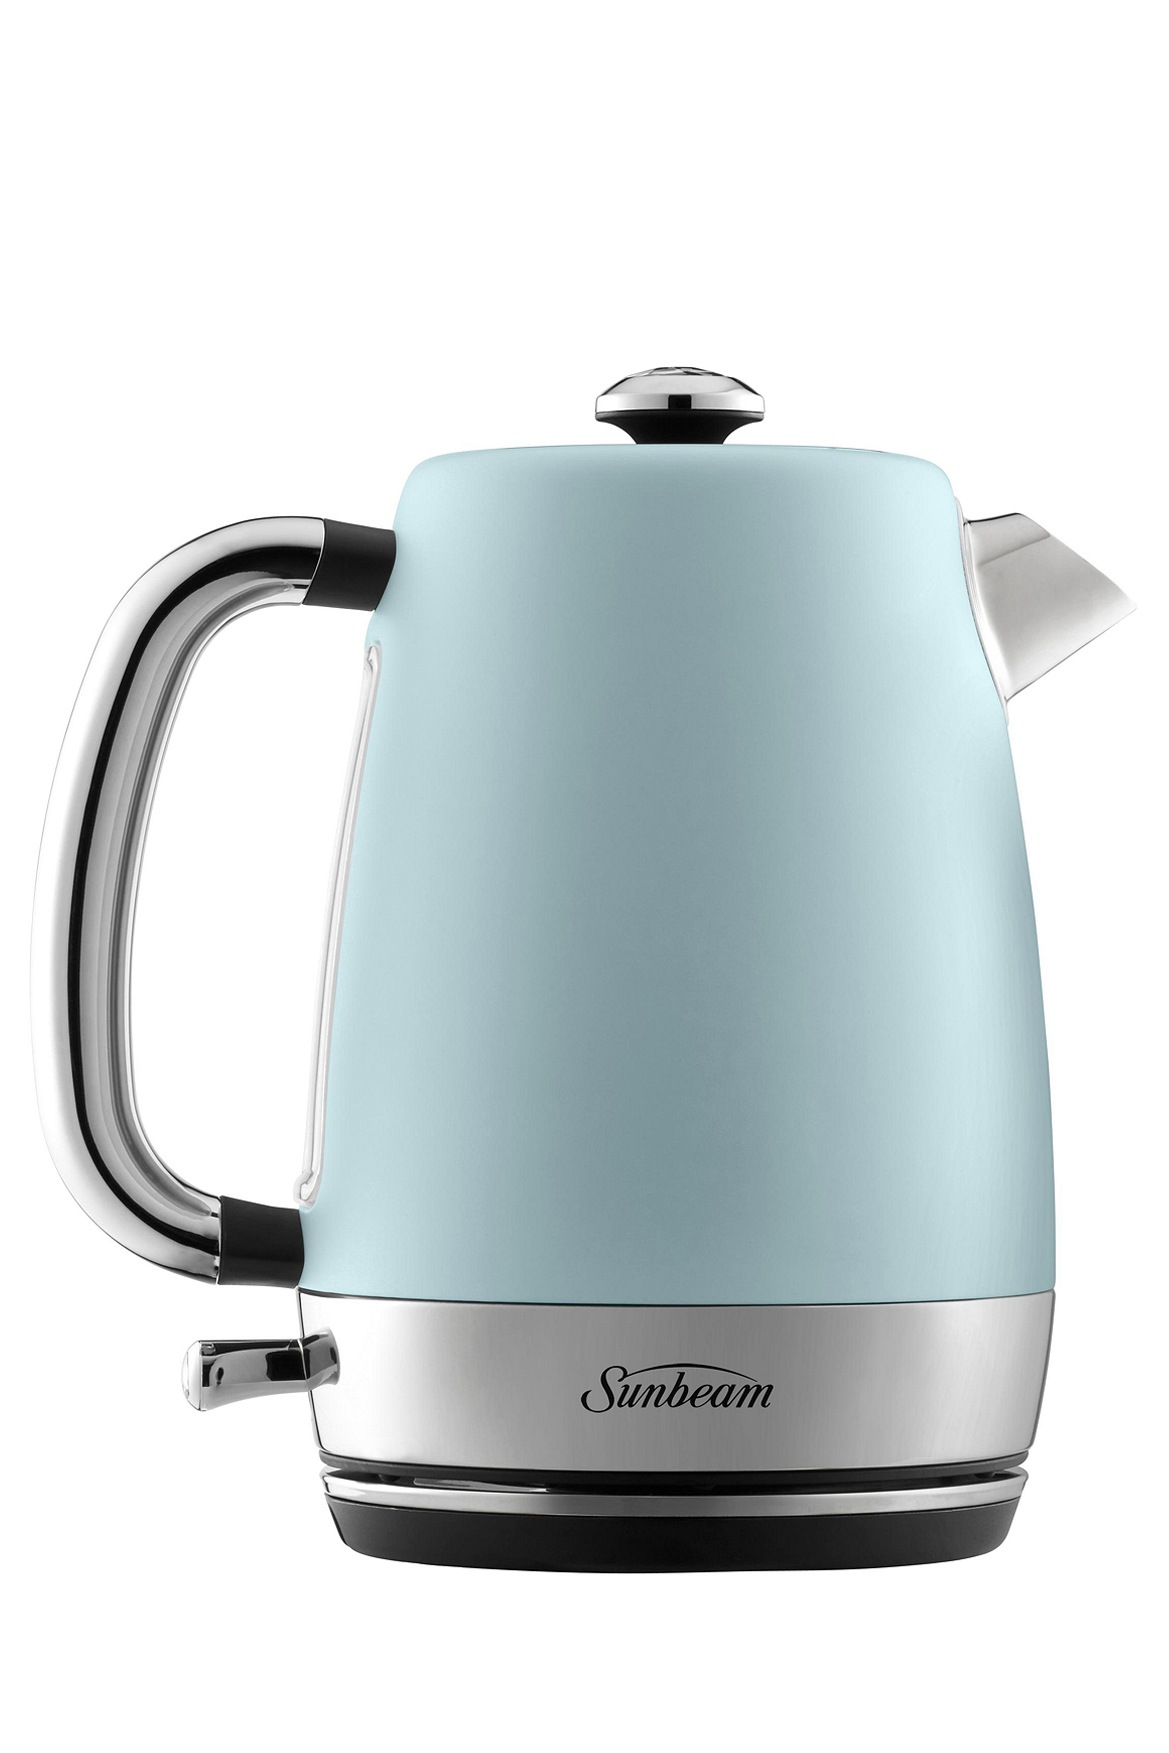 Sunbeam | KE2210B London Collection Conventional kettle: Blue | Myer ...